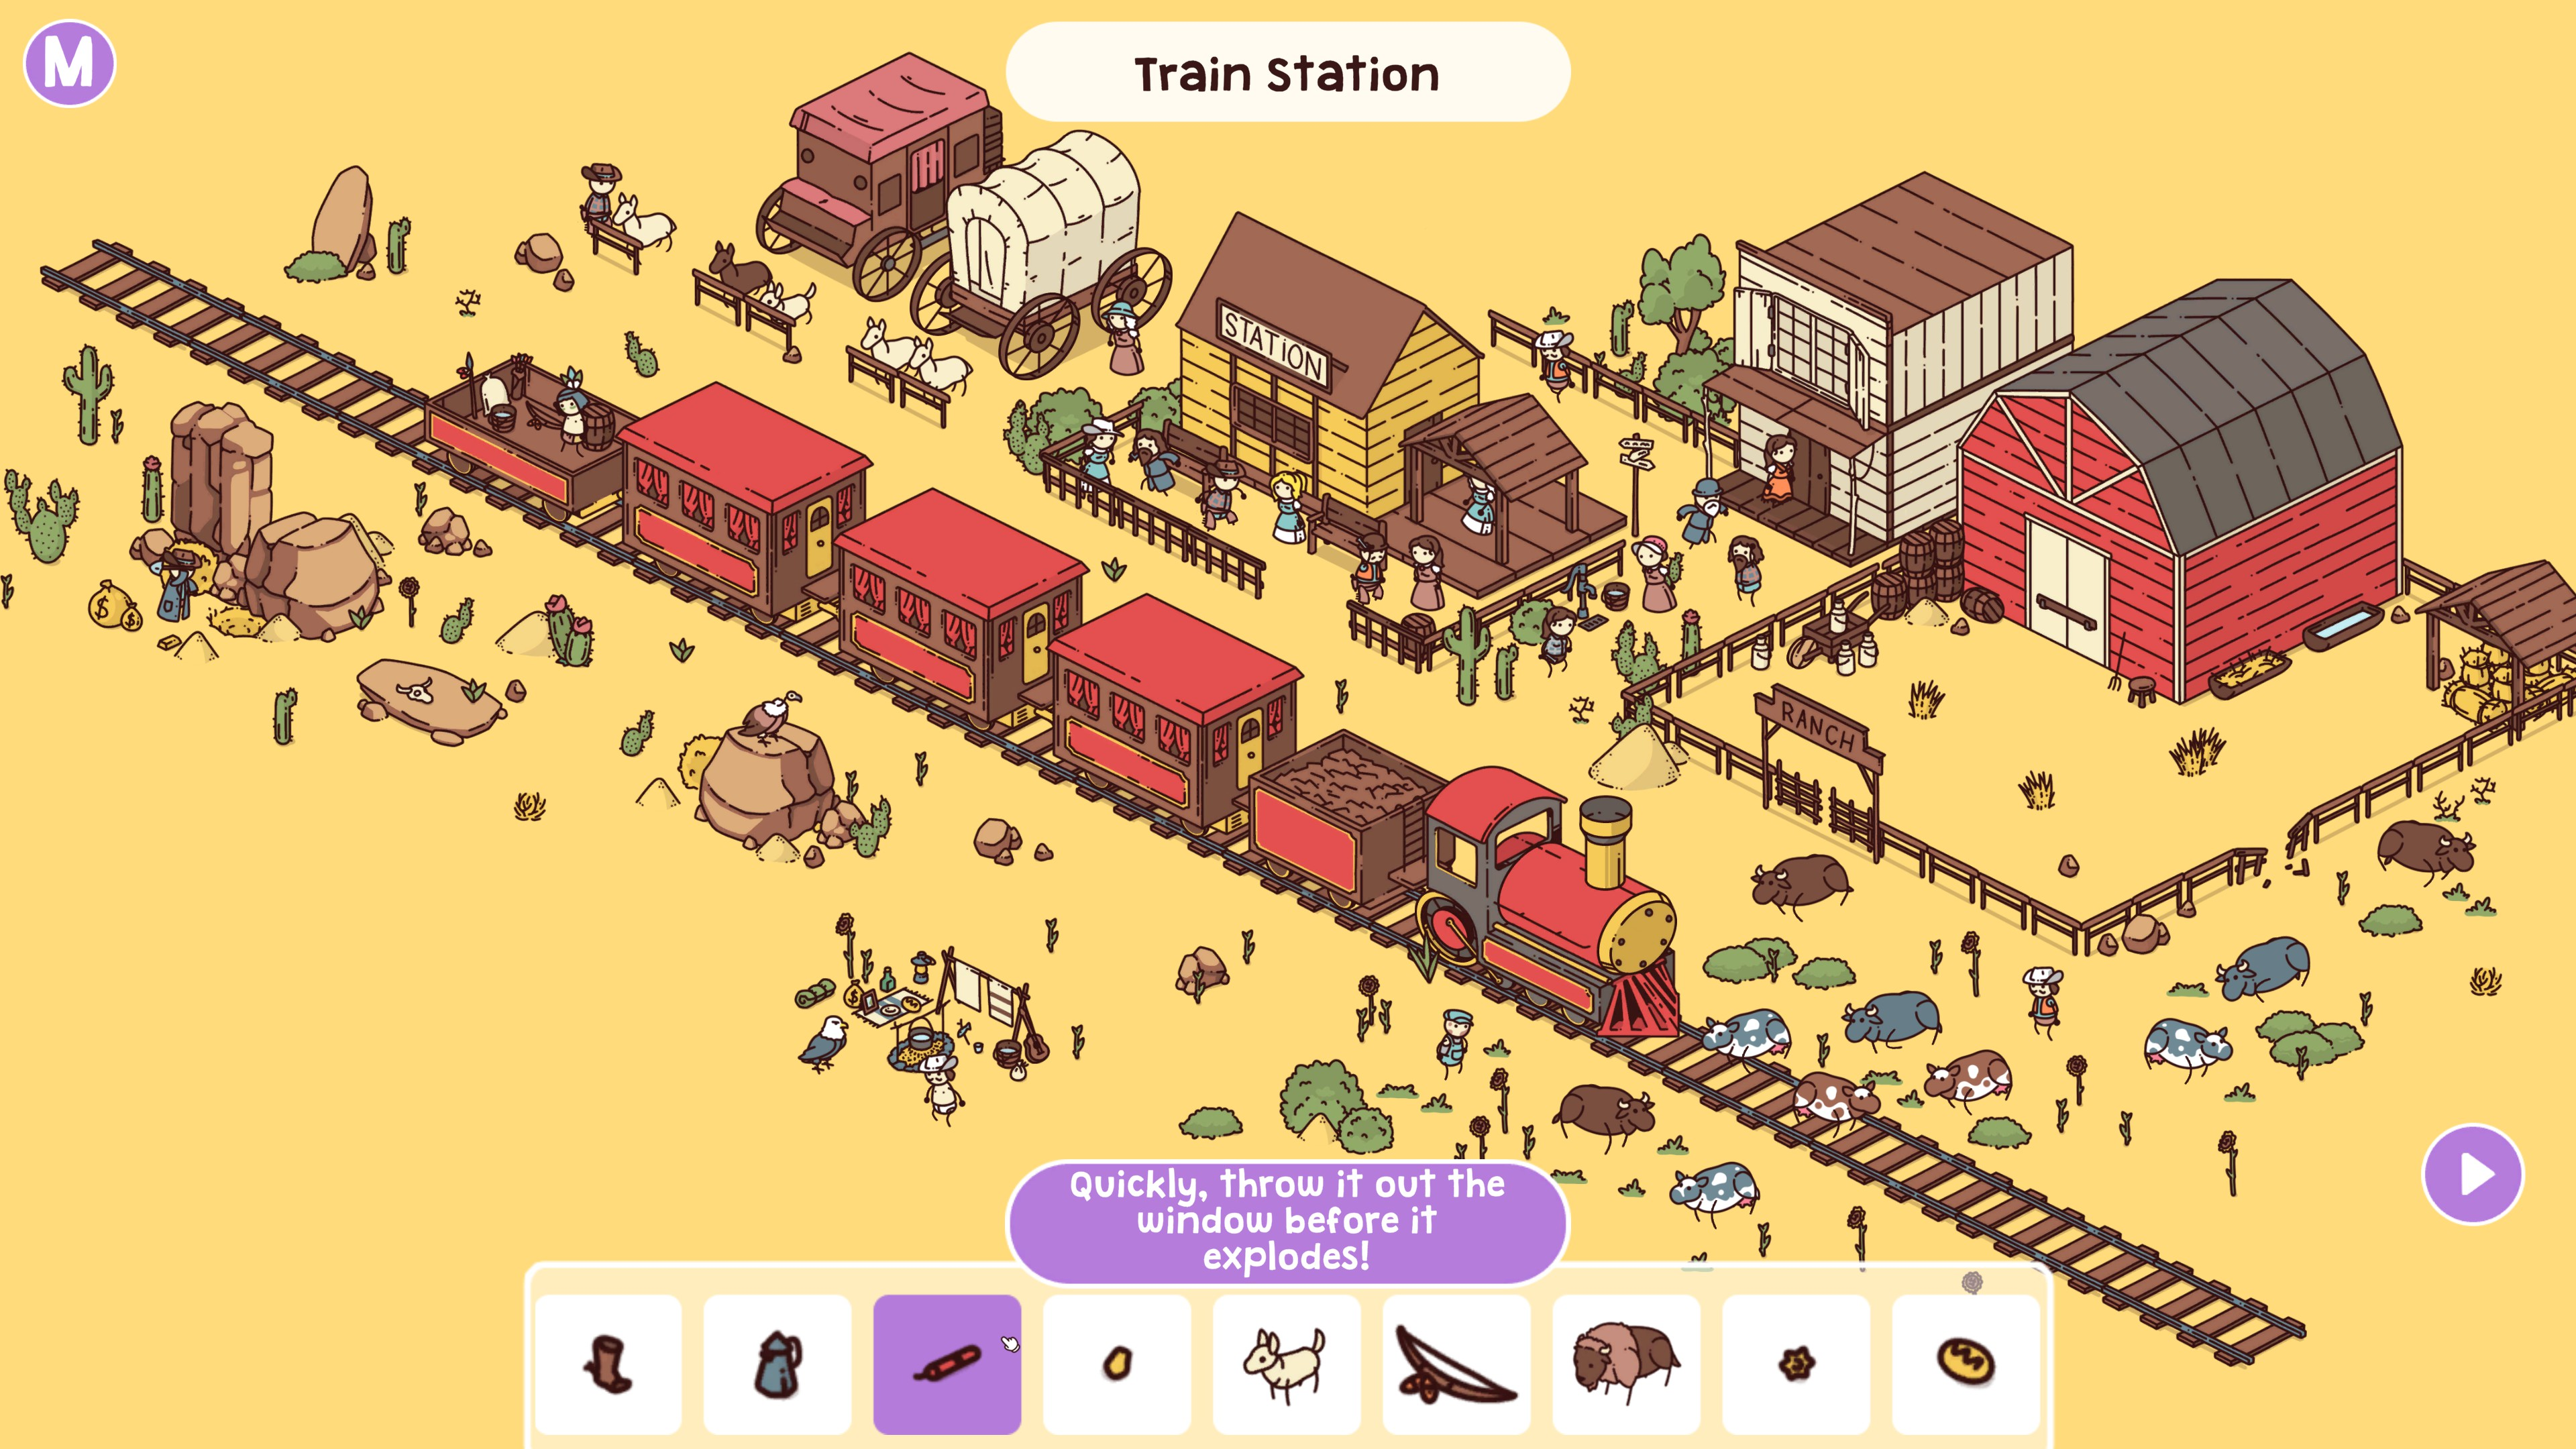 Hidden Through Time. Train station themed level set in the wild west. There are 9 items to fine. The dynamite is being hovered and gives the clue 'quickly, throw it out the window before it explodes!'